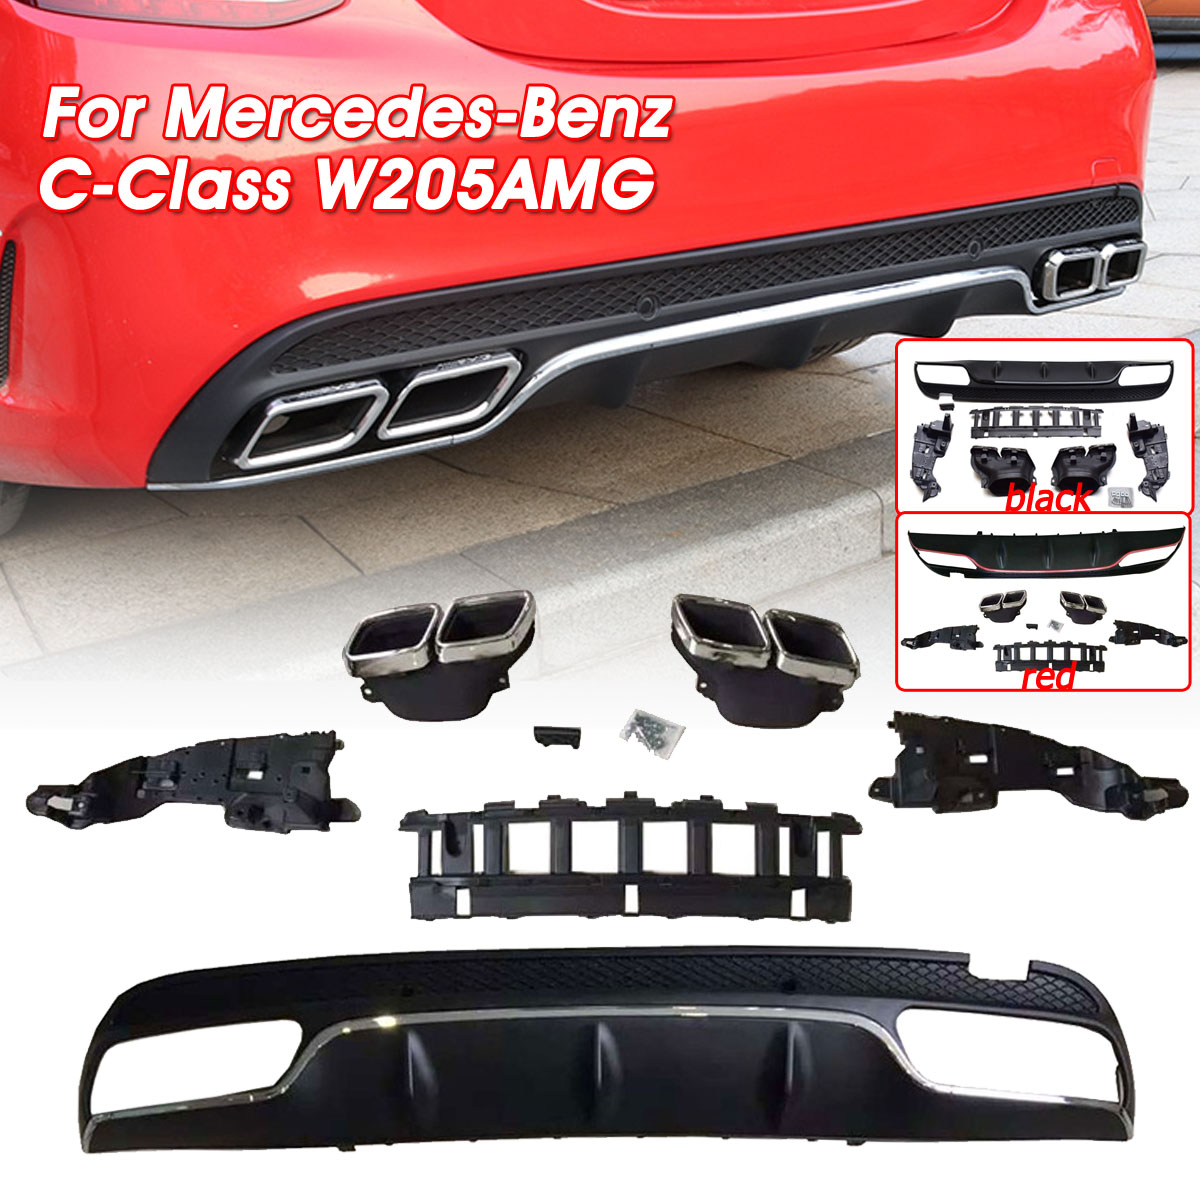 Autoleader C Class ABS Rear <font><b>Bumper</b></font> Diffuser Exhaust Muffler Tips Lip Spoiler For <font><b>Benz</b></font> C-Class <font><b>W205</b></font> Black/Red/Silver <font><b>Bumper</b></font> Guard image